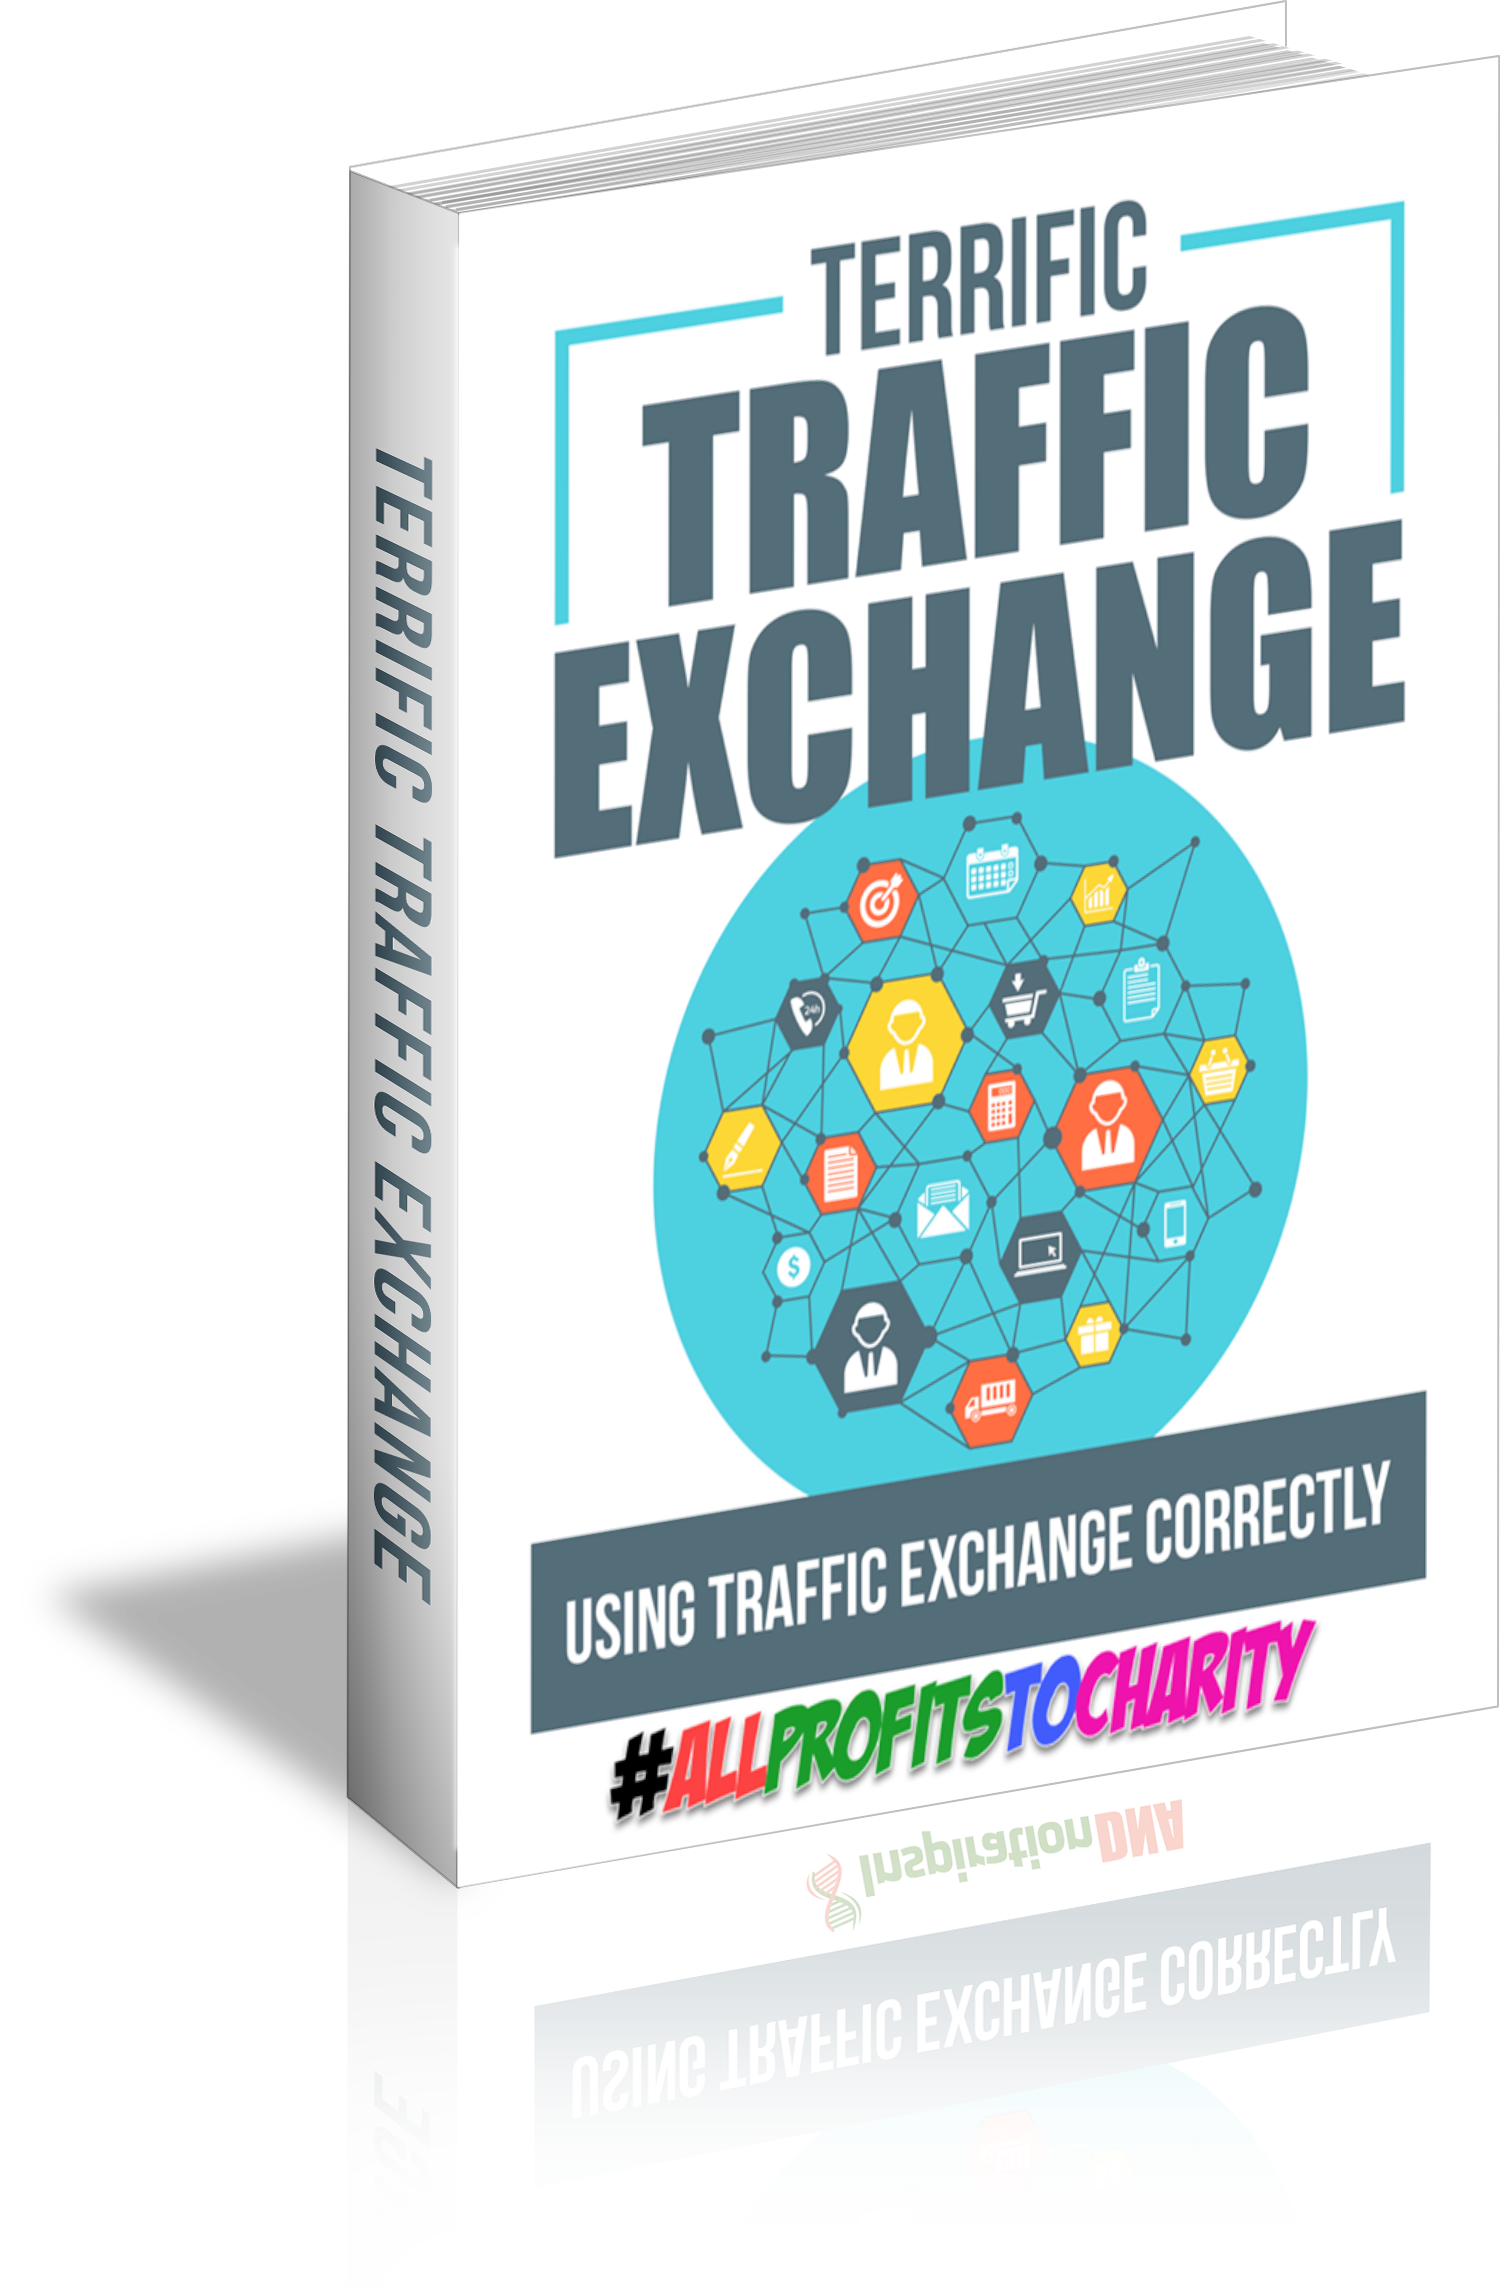 terrific traffic exchange cover